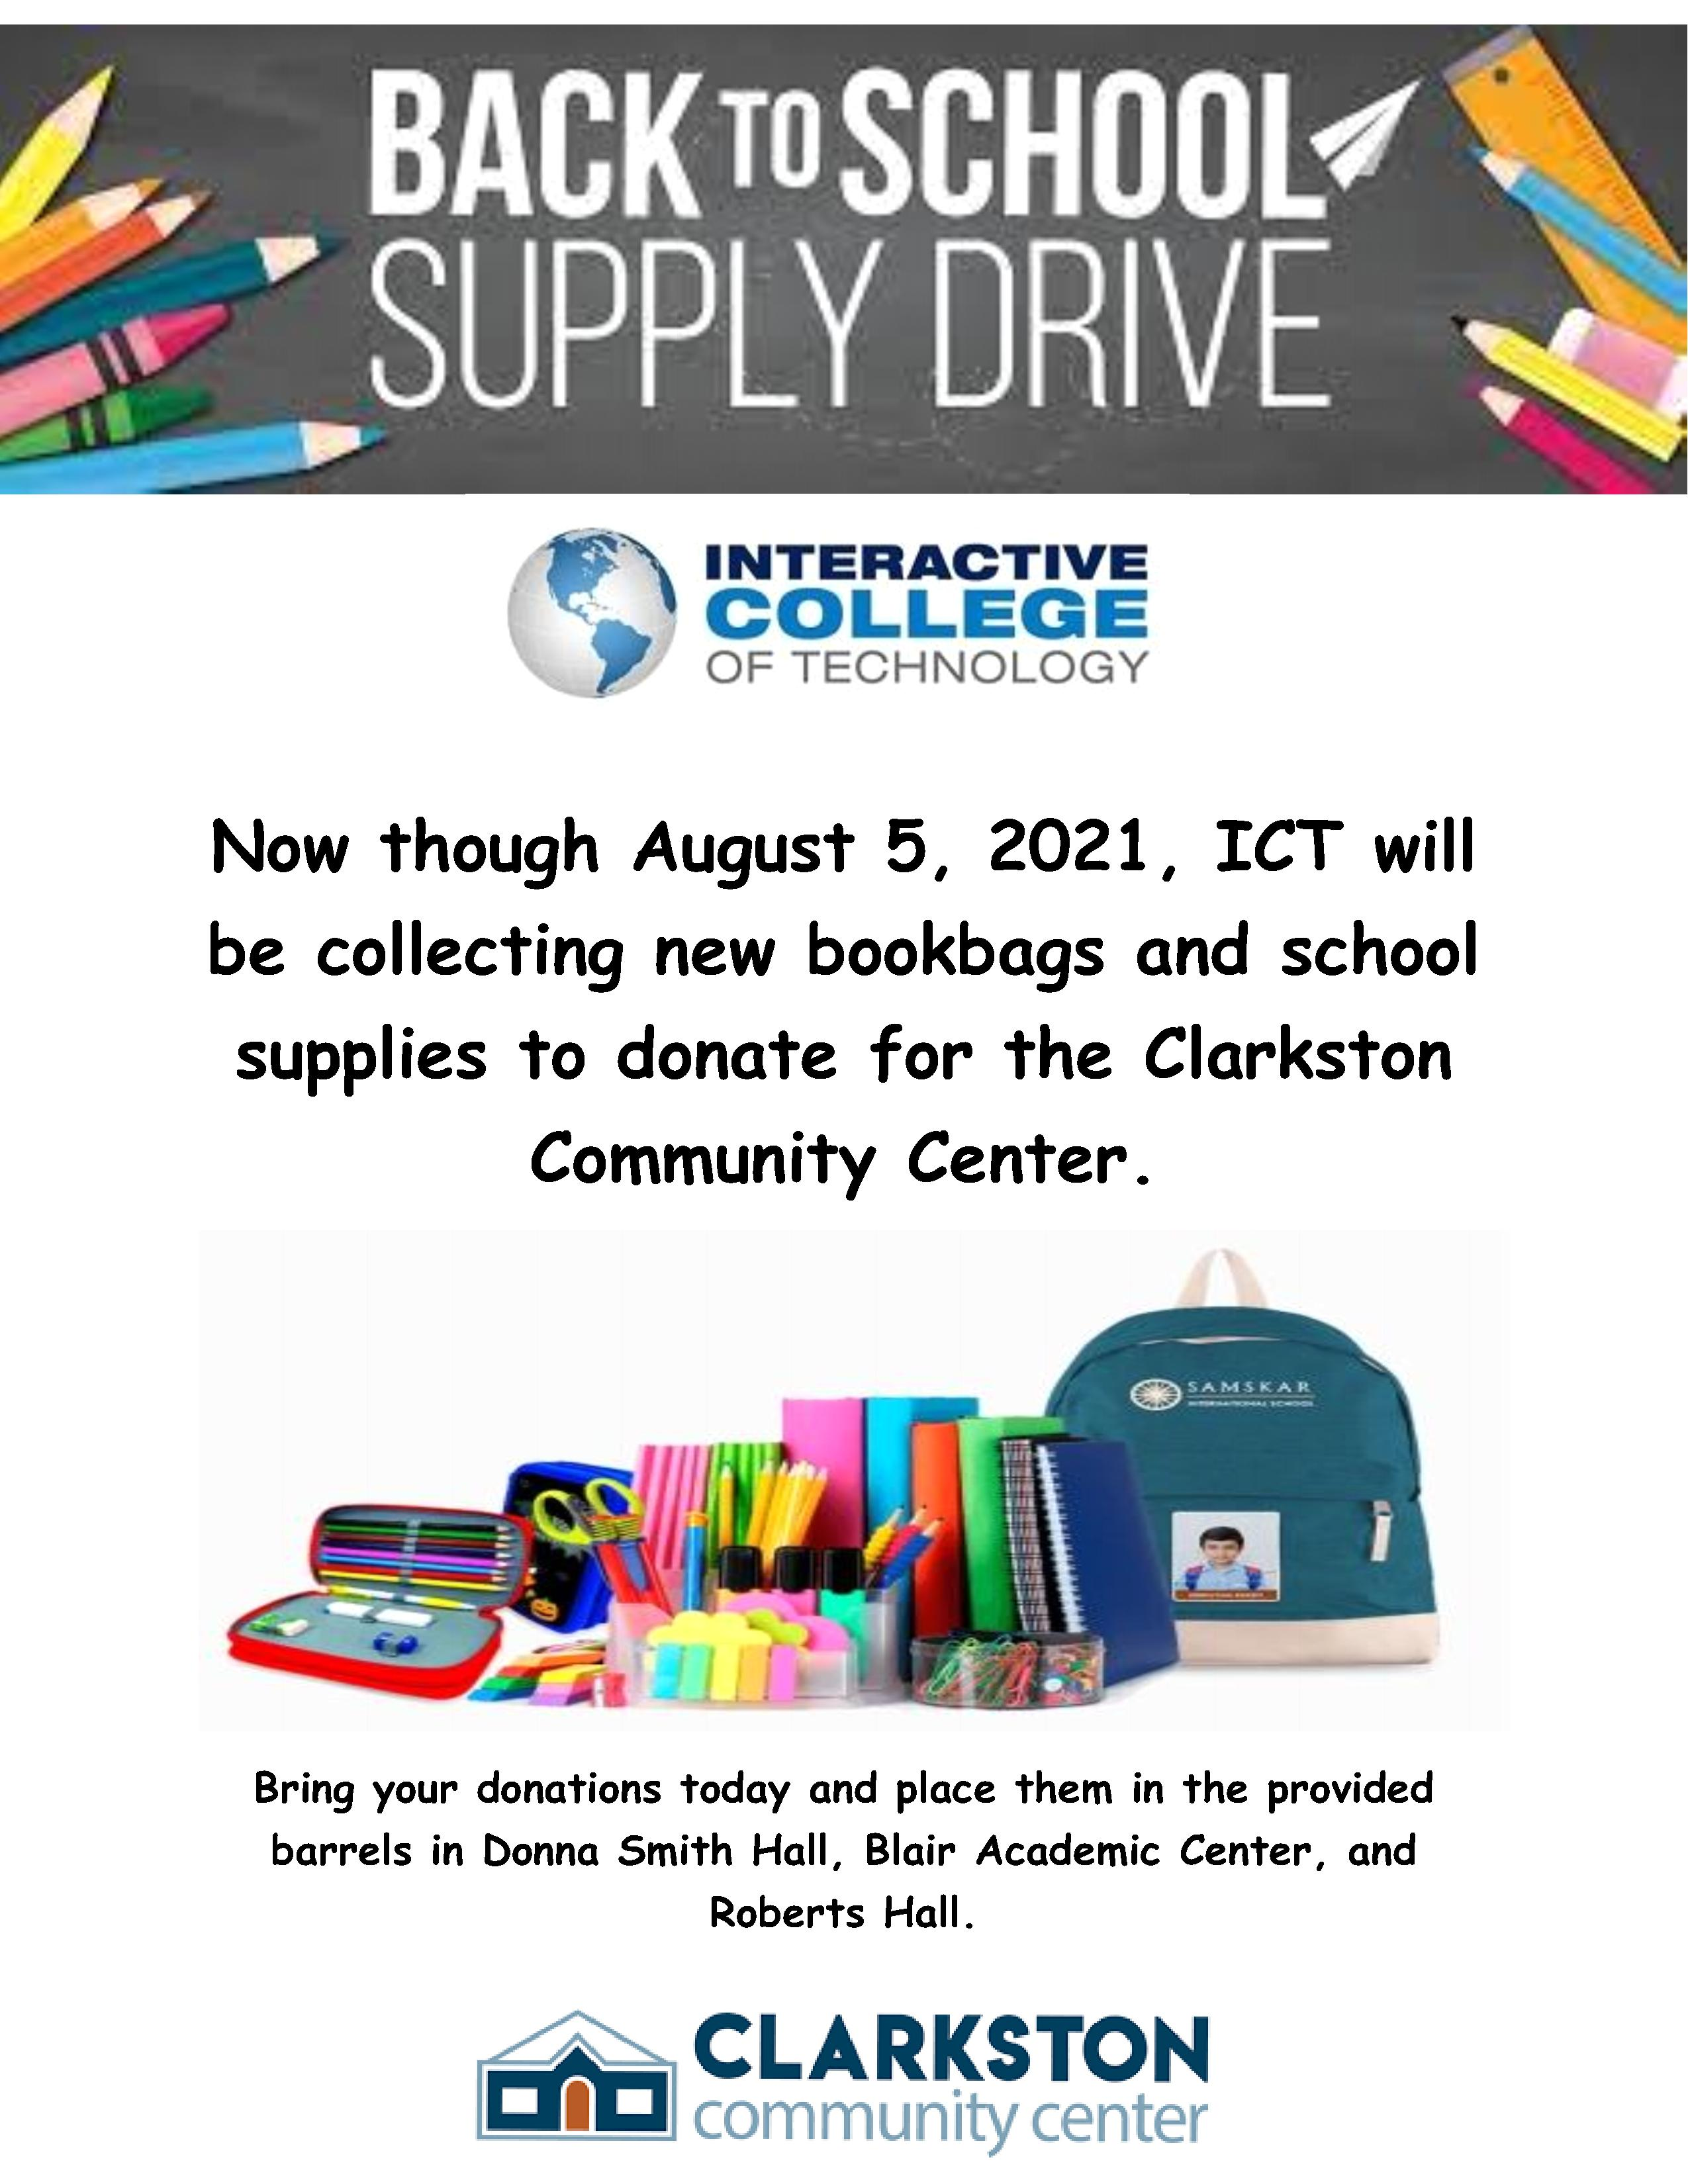 CHAMBLEE CAMPUS:  Clarkston Community Center Back to School Drive  Donate new book bags and school supplies today!